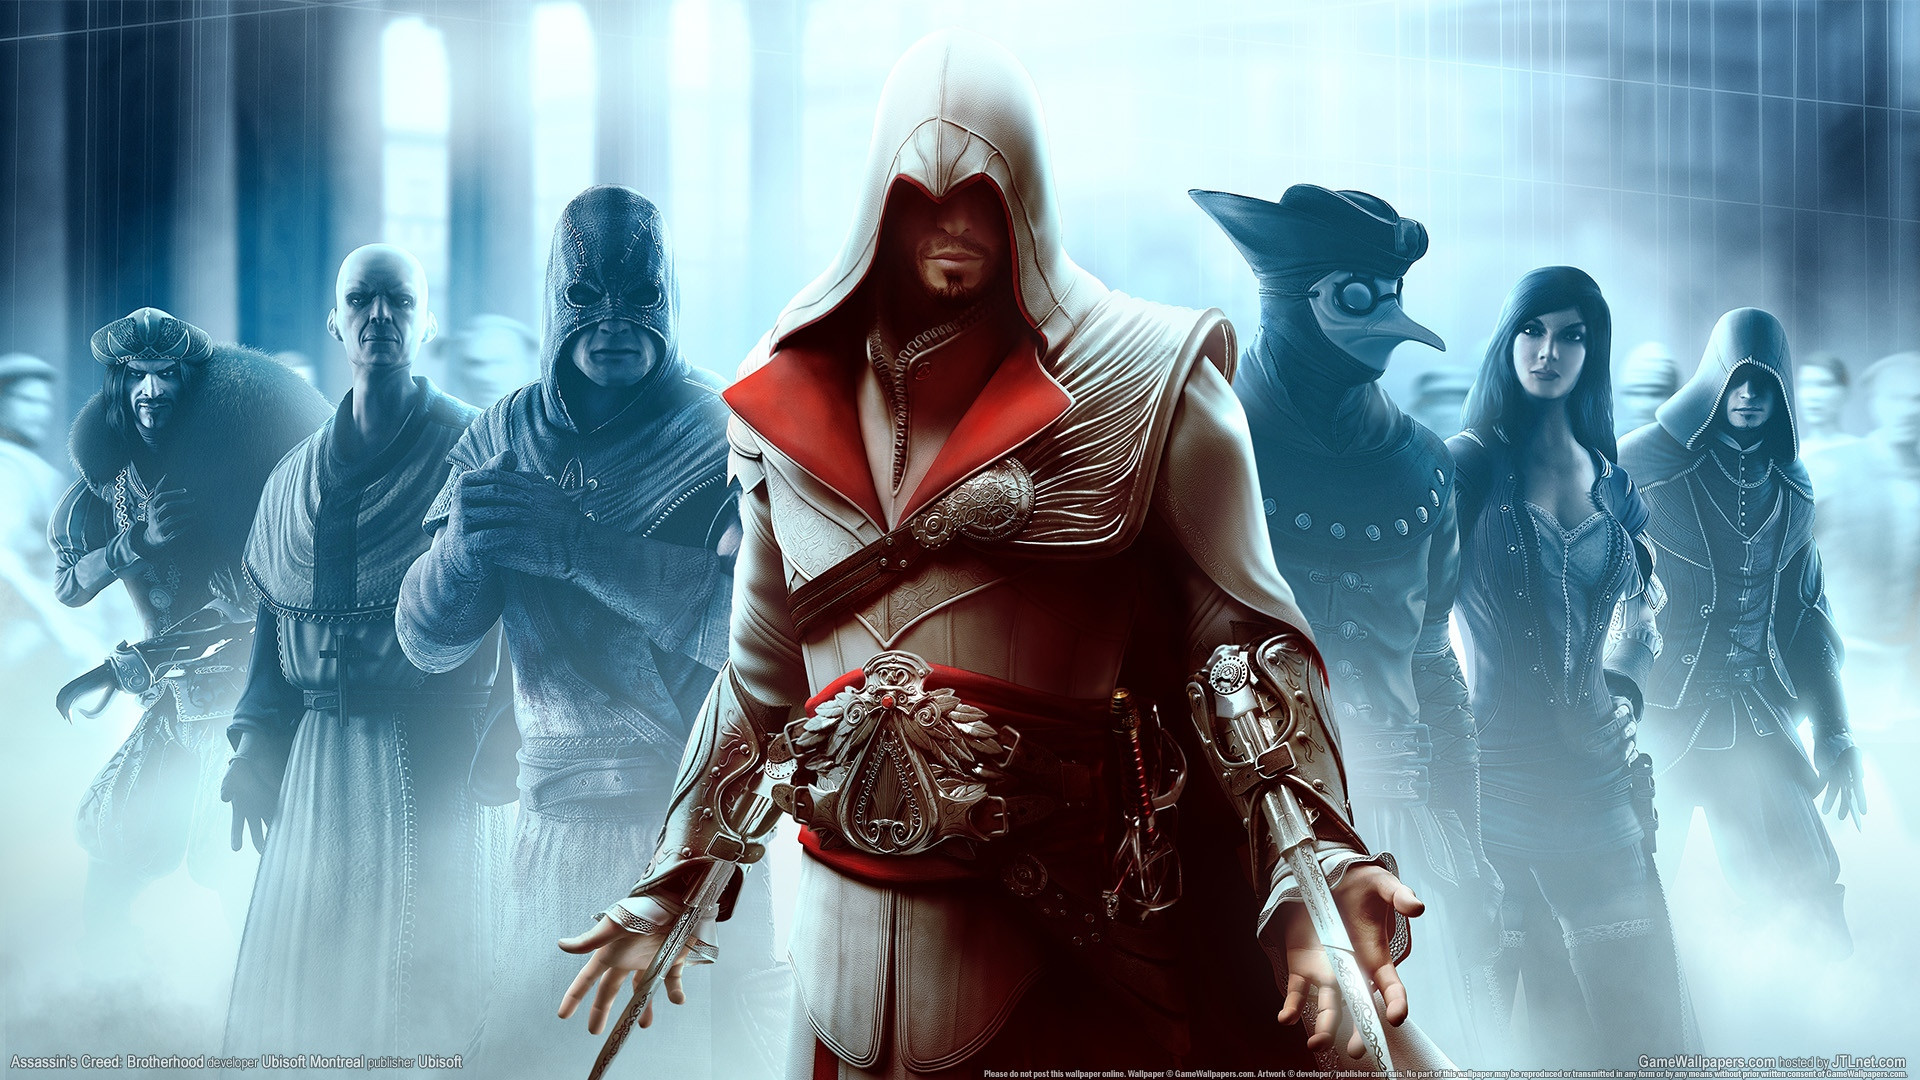 Assassins Creed Brotherhood Logo iPad Wallpaper Free iPad Retina